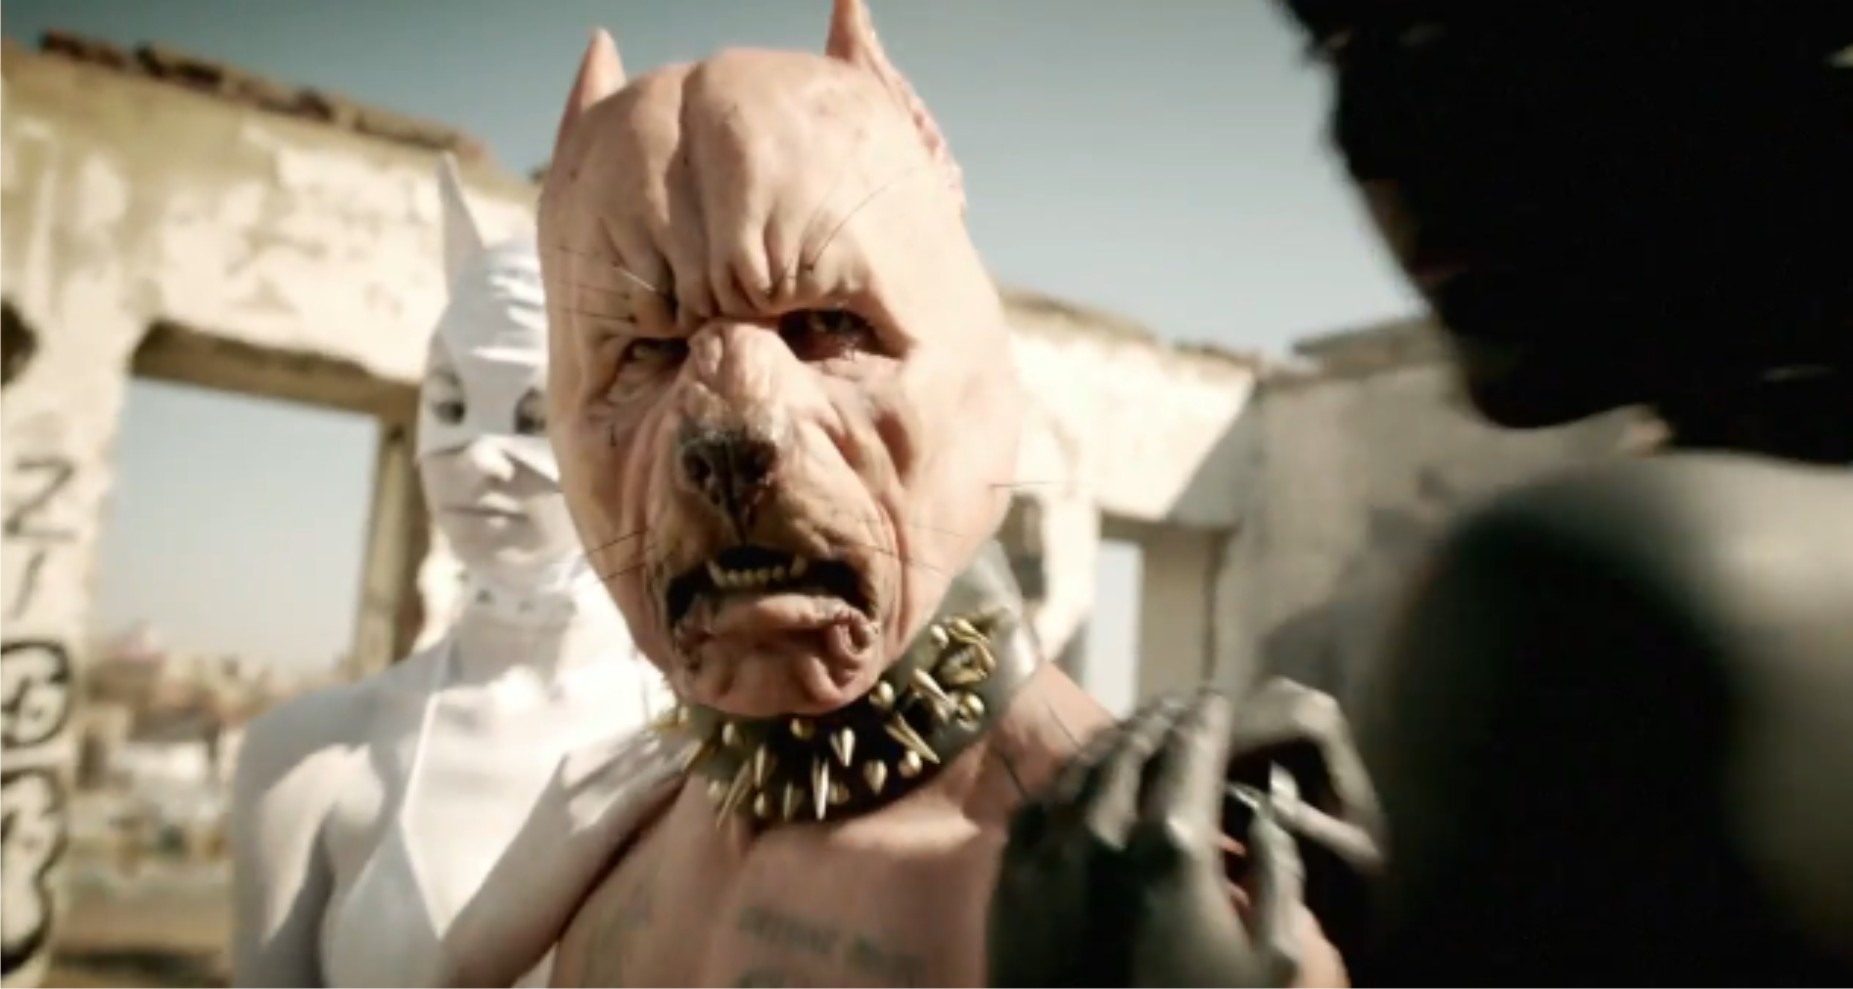 Die Antwoord release their Pitbull Terrier music video to their South African music fans